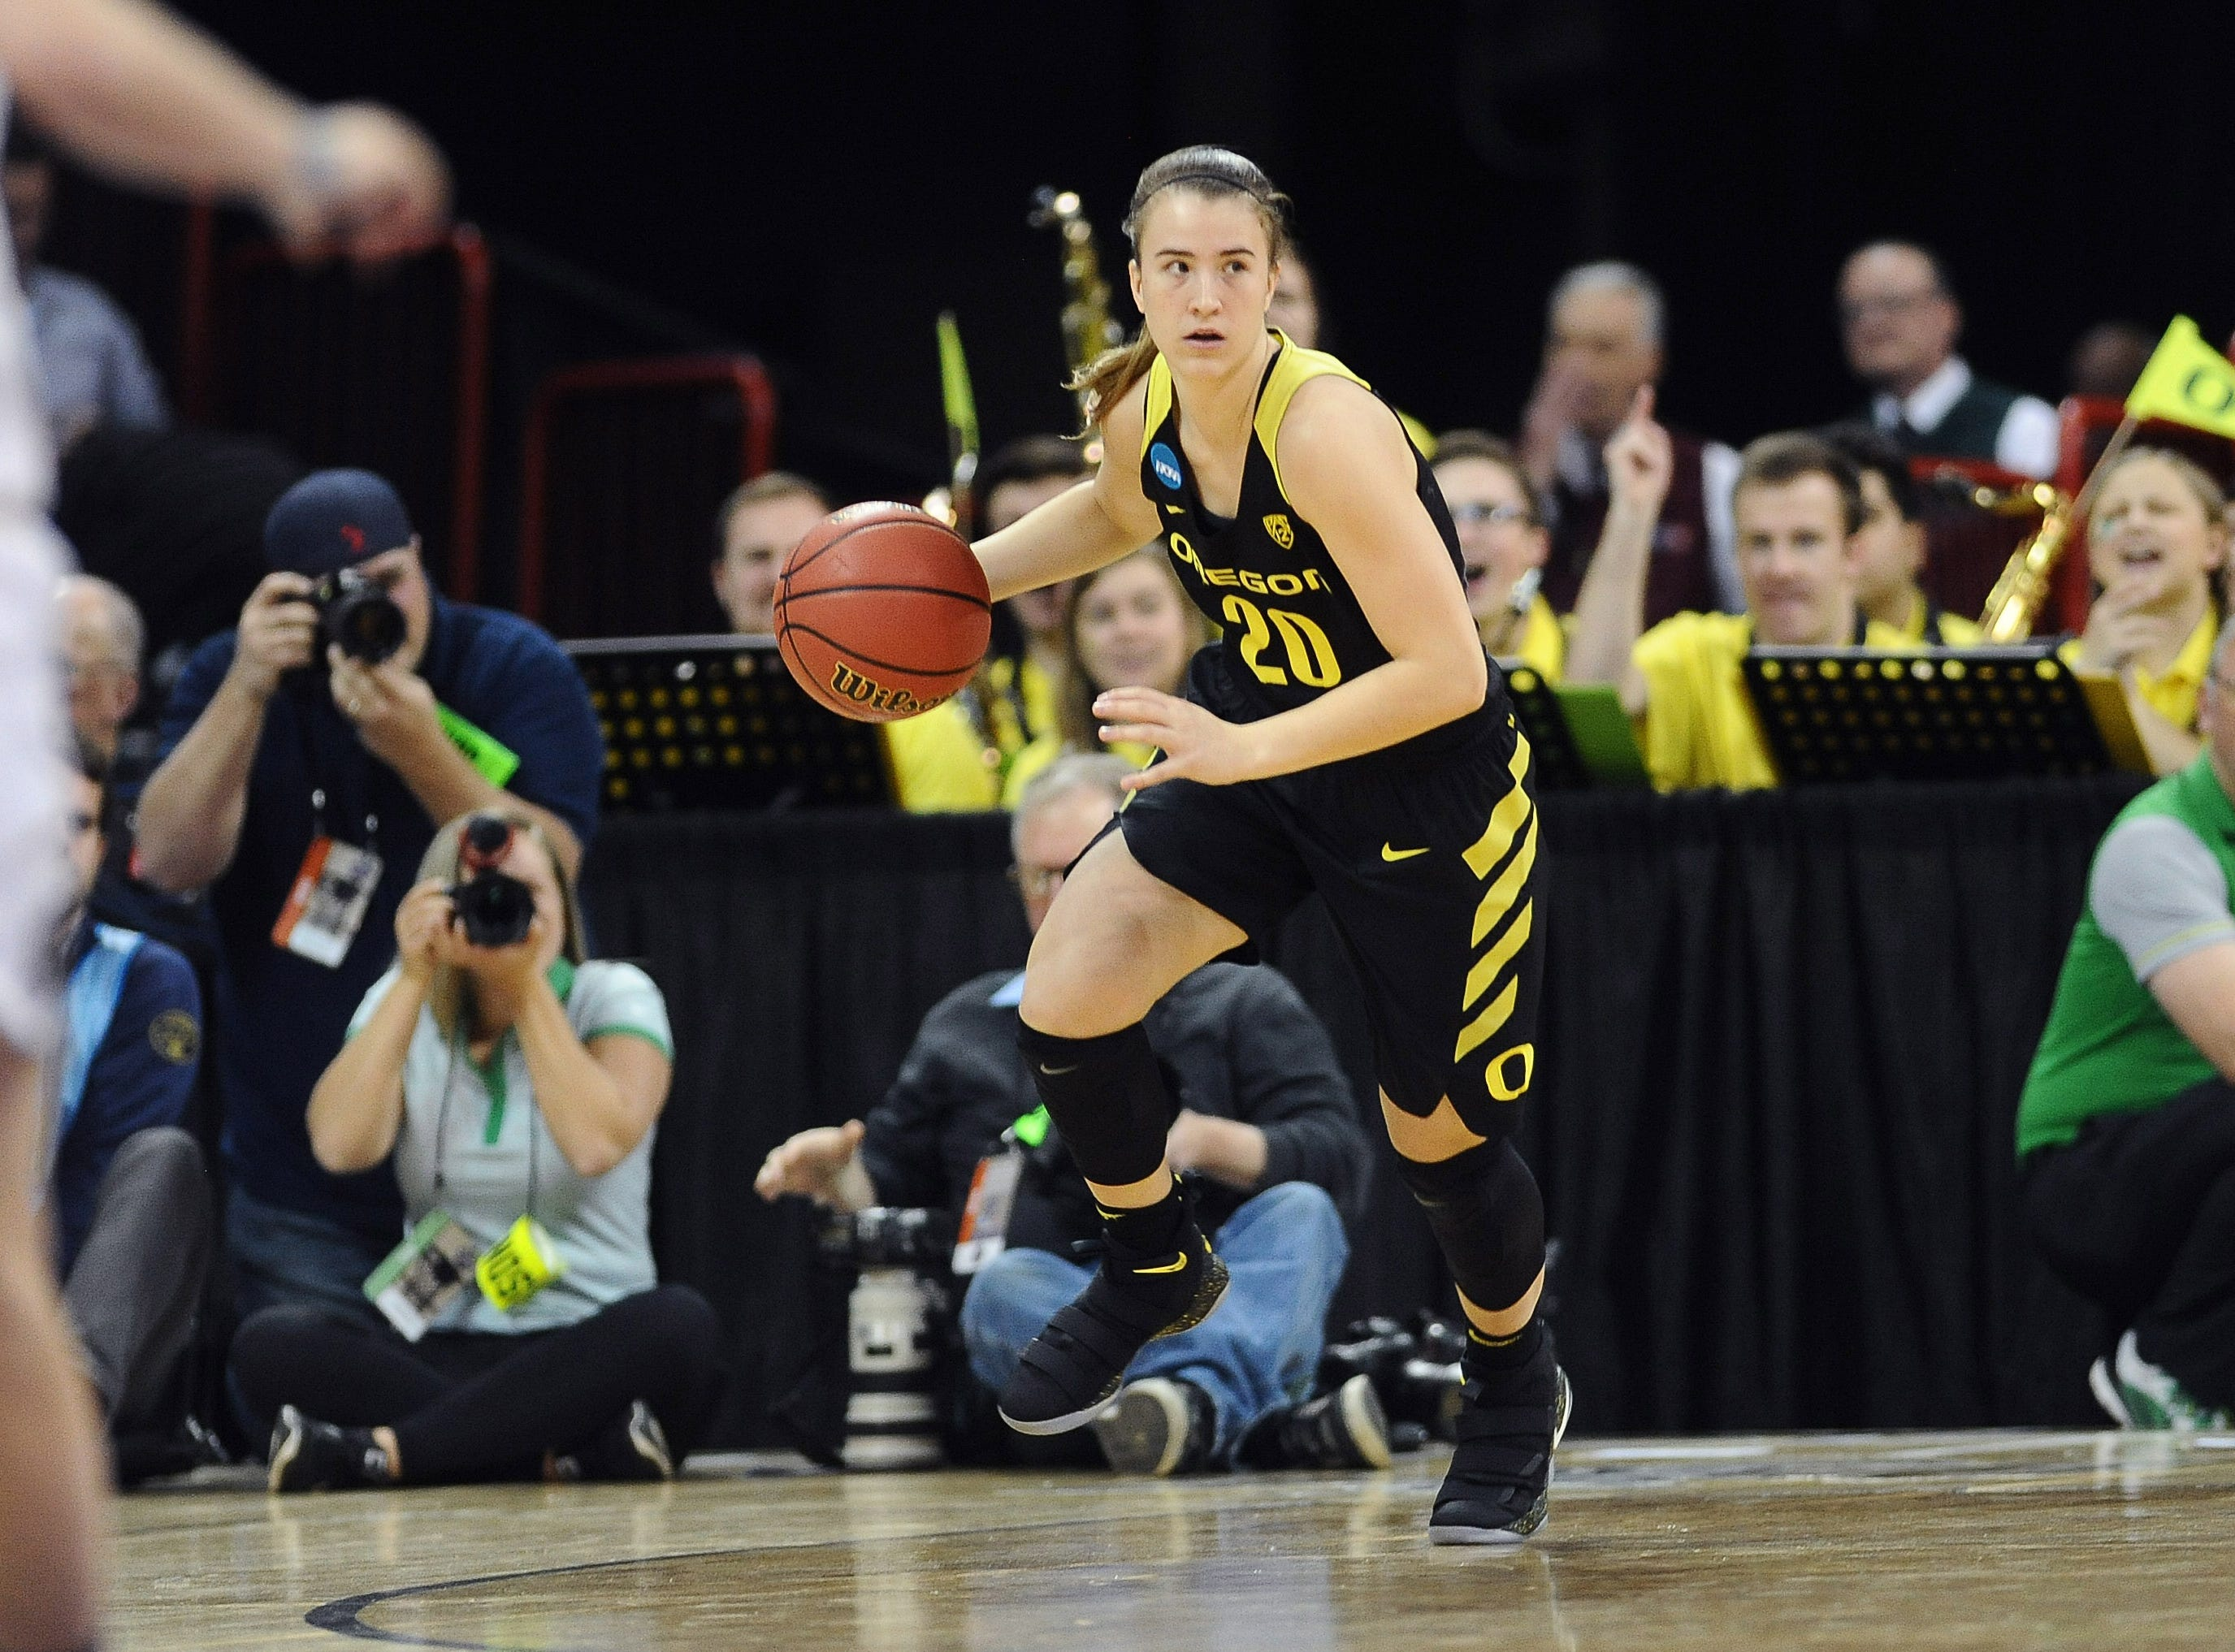 Oregon guard Sabrina Ionescu, with 13 career triple-doubles, could be the No. 1 pick in the 2019 WNBA draft if she turns pro after her junior season.